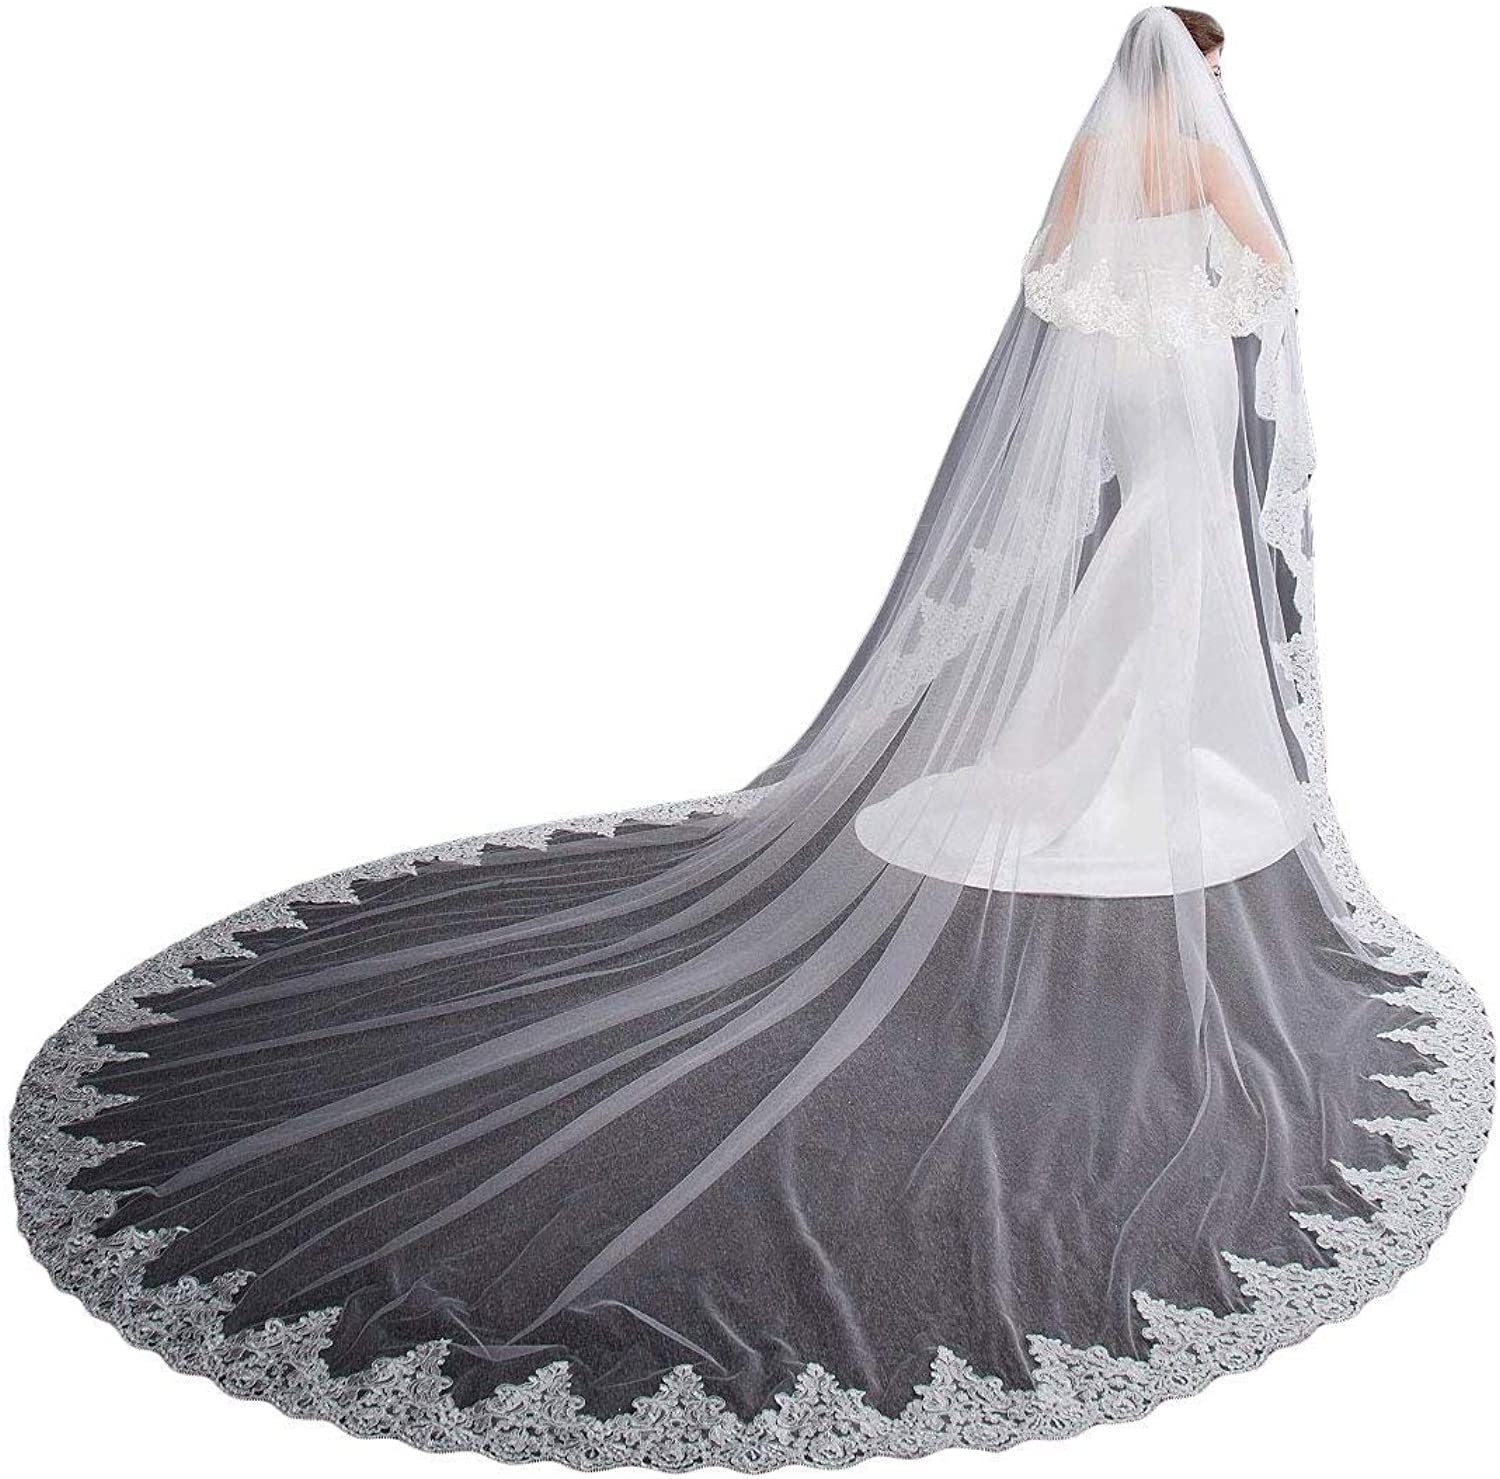 Fenghuavip 5M Long Cathedral Wedding Veil 1T Appliques Bridal Veils with Comb